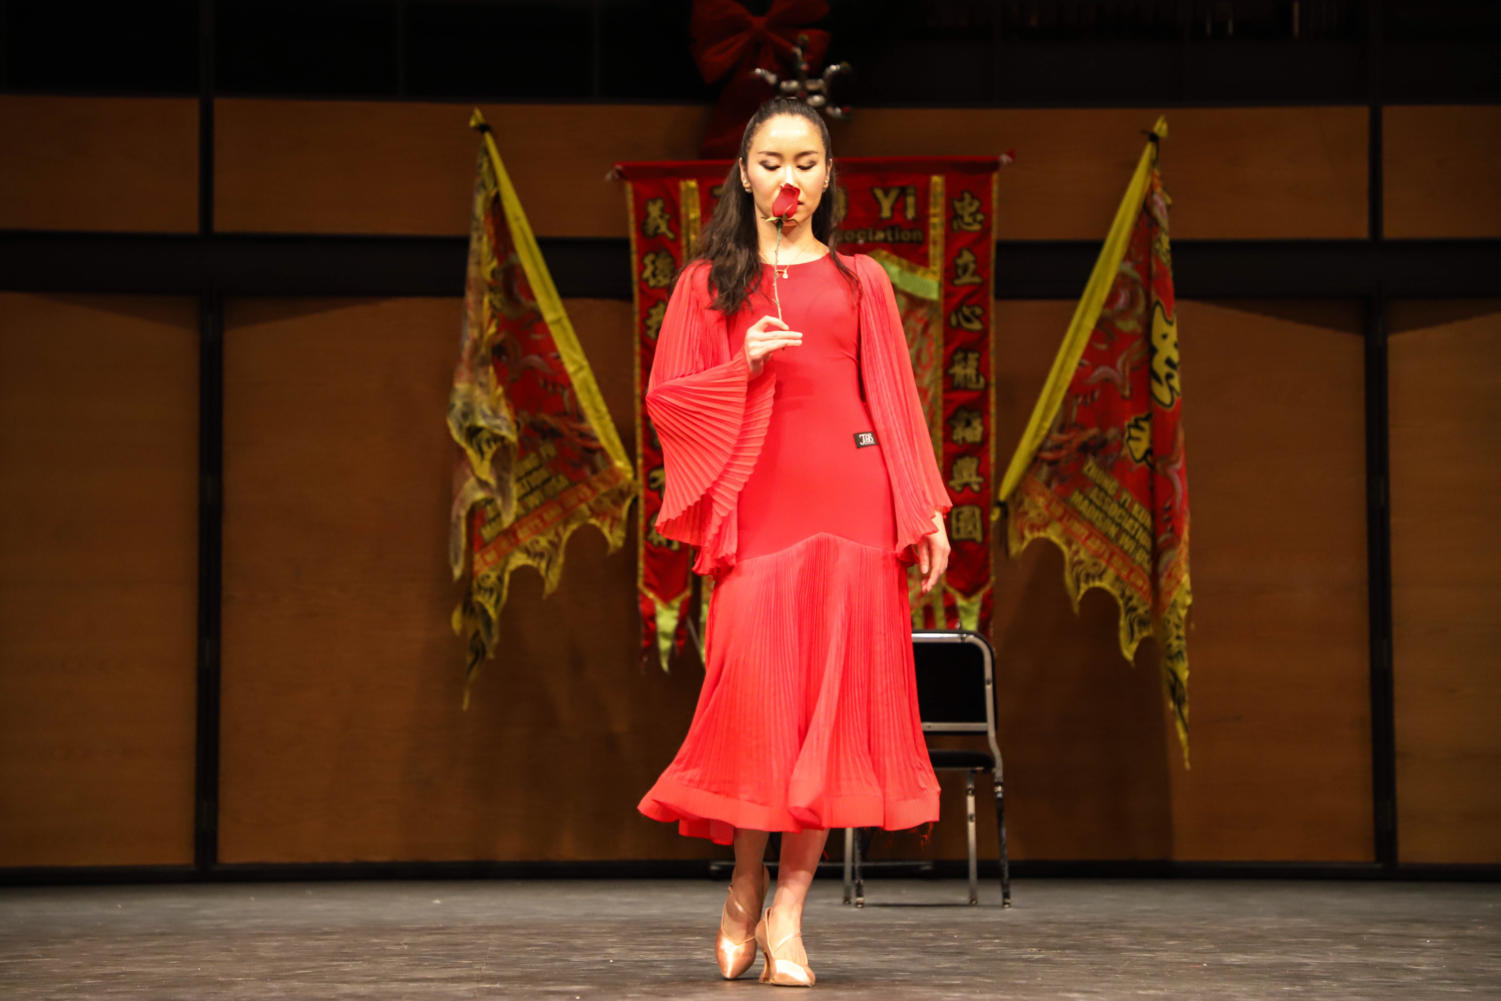 Dr. Alice Han performing a ballroom dance on stage.